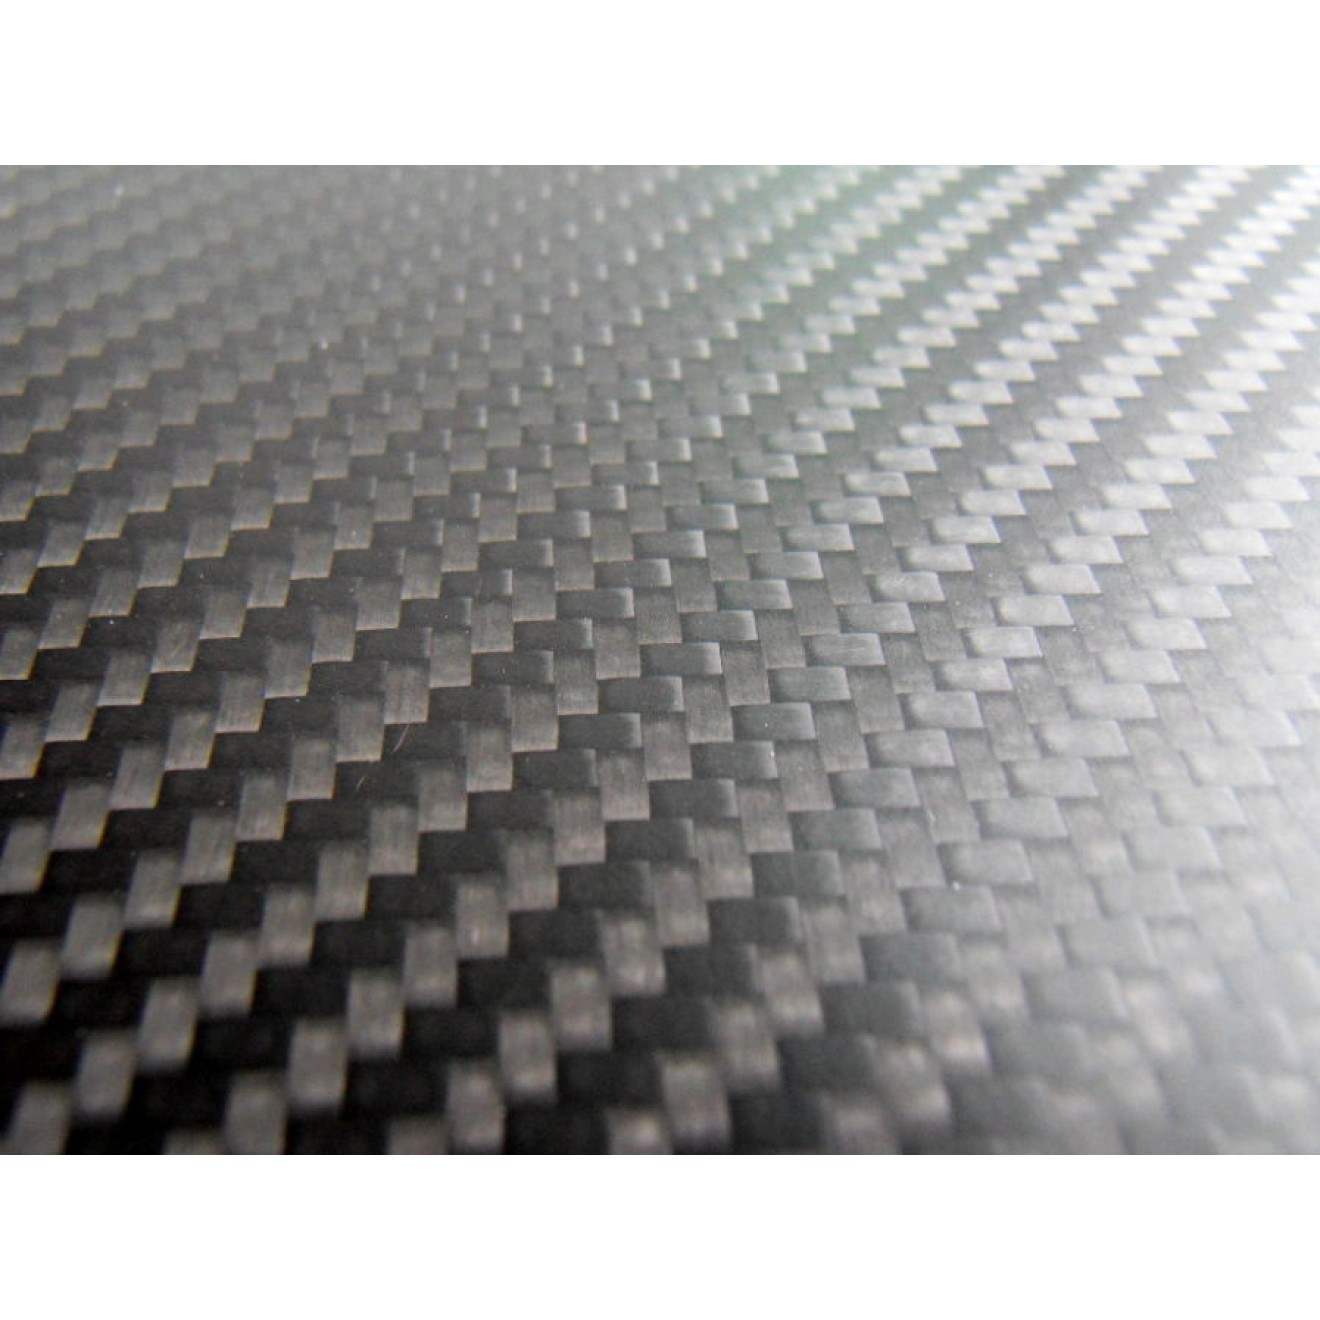 Carbon Fiber/Epoxy Sheets 1920x970x0,5mm, surface high gloss finish on one  side